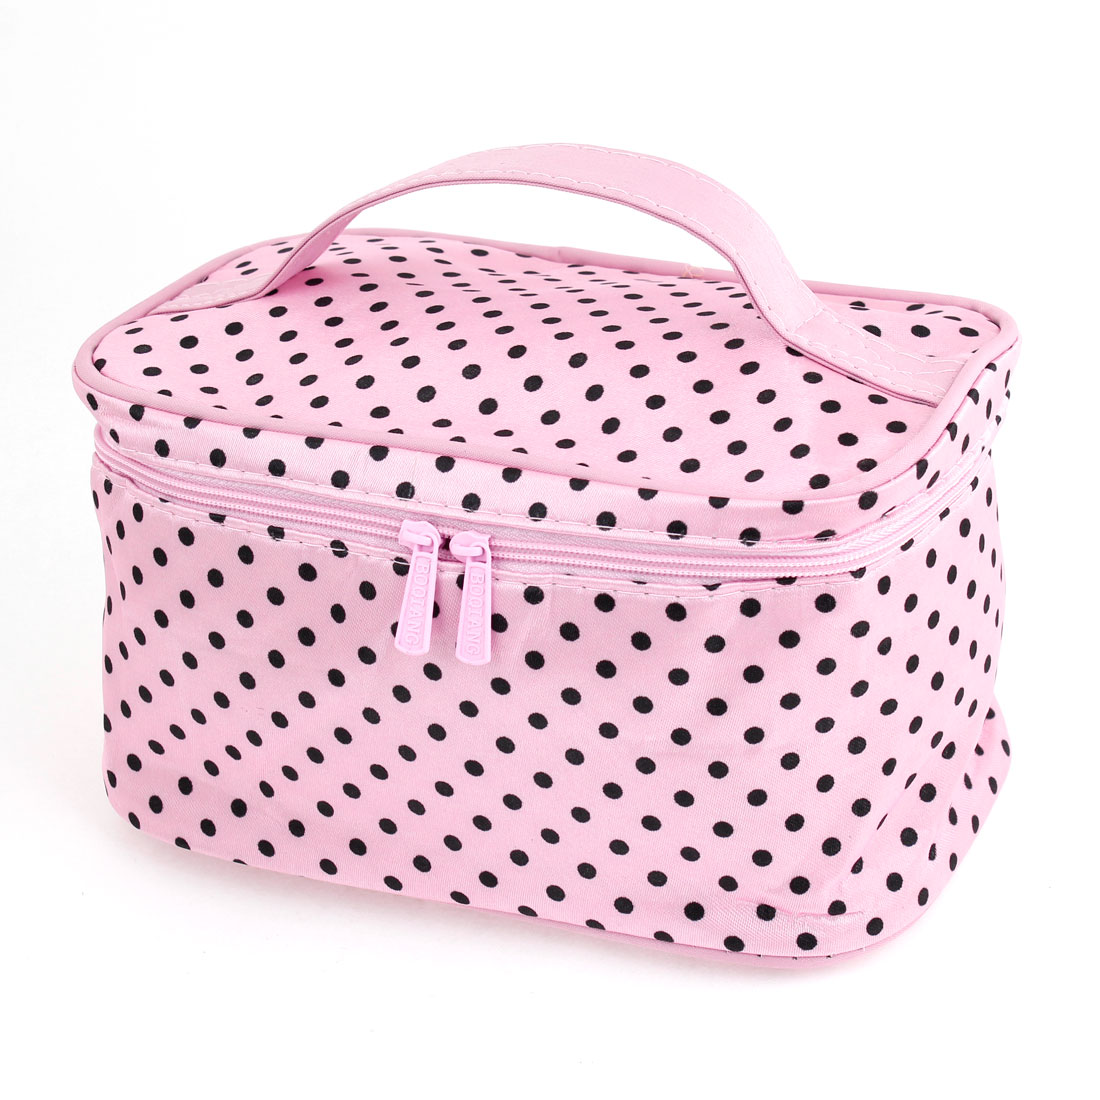 Black Dot Pattern Cosmetic Bag Make Up Pouch Case Pink for Women